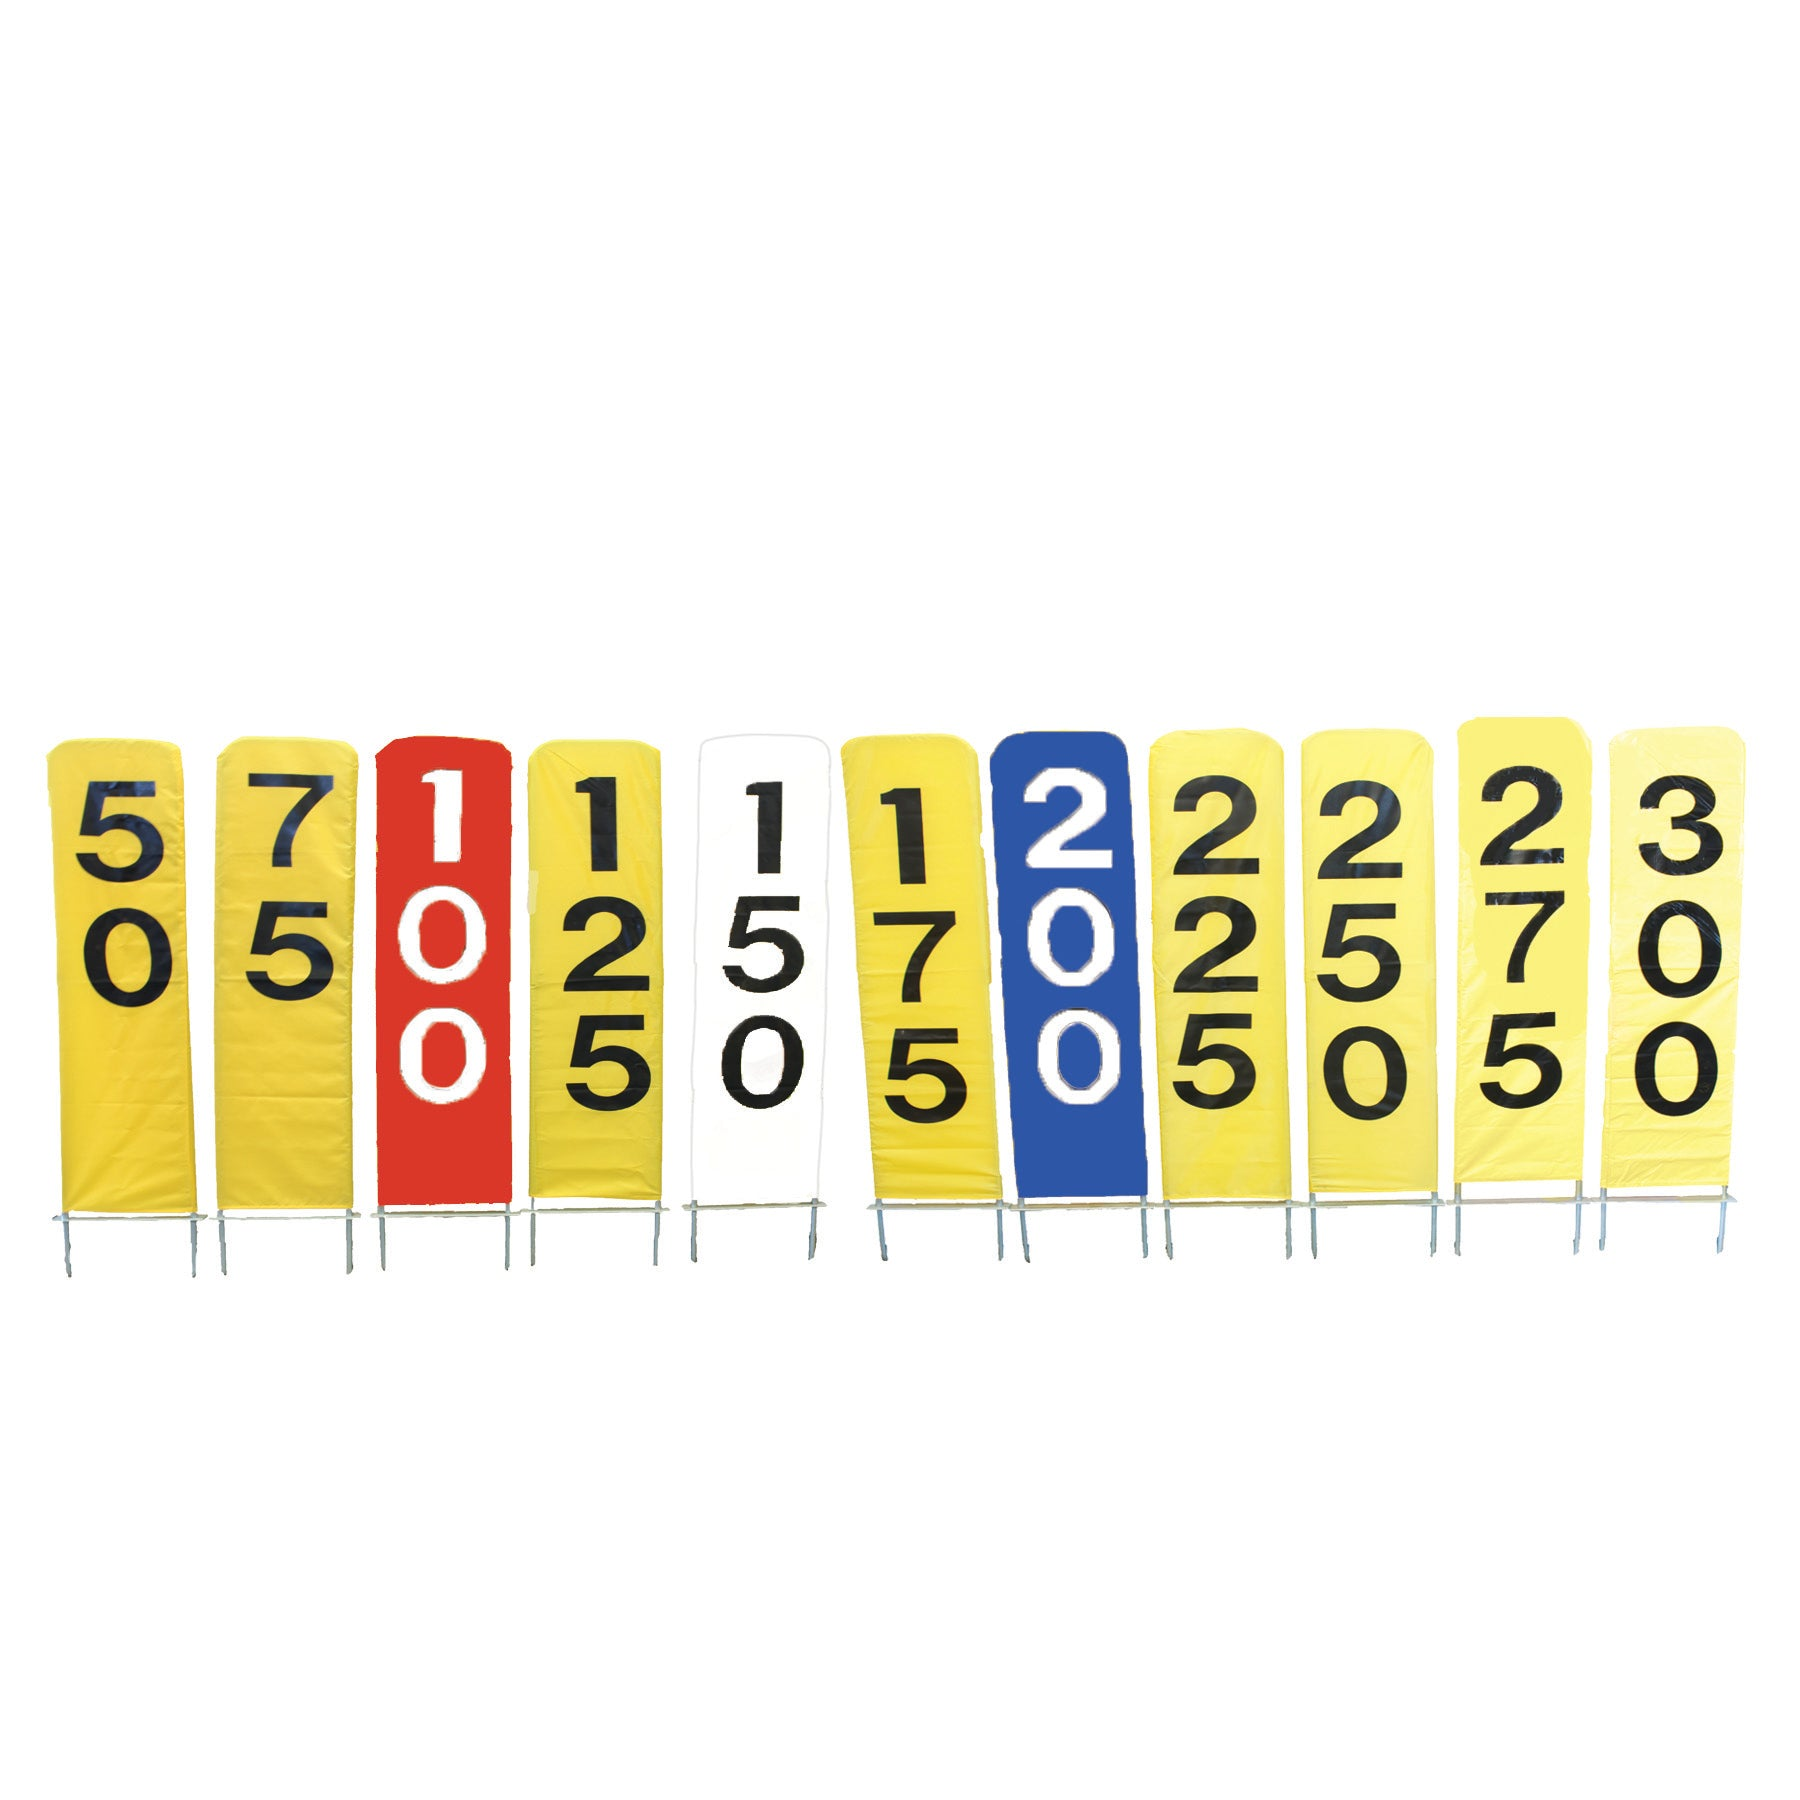 Yardage Markers (with frames)